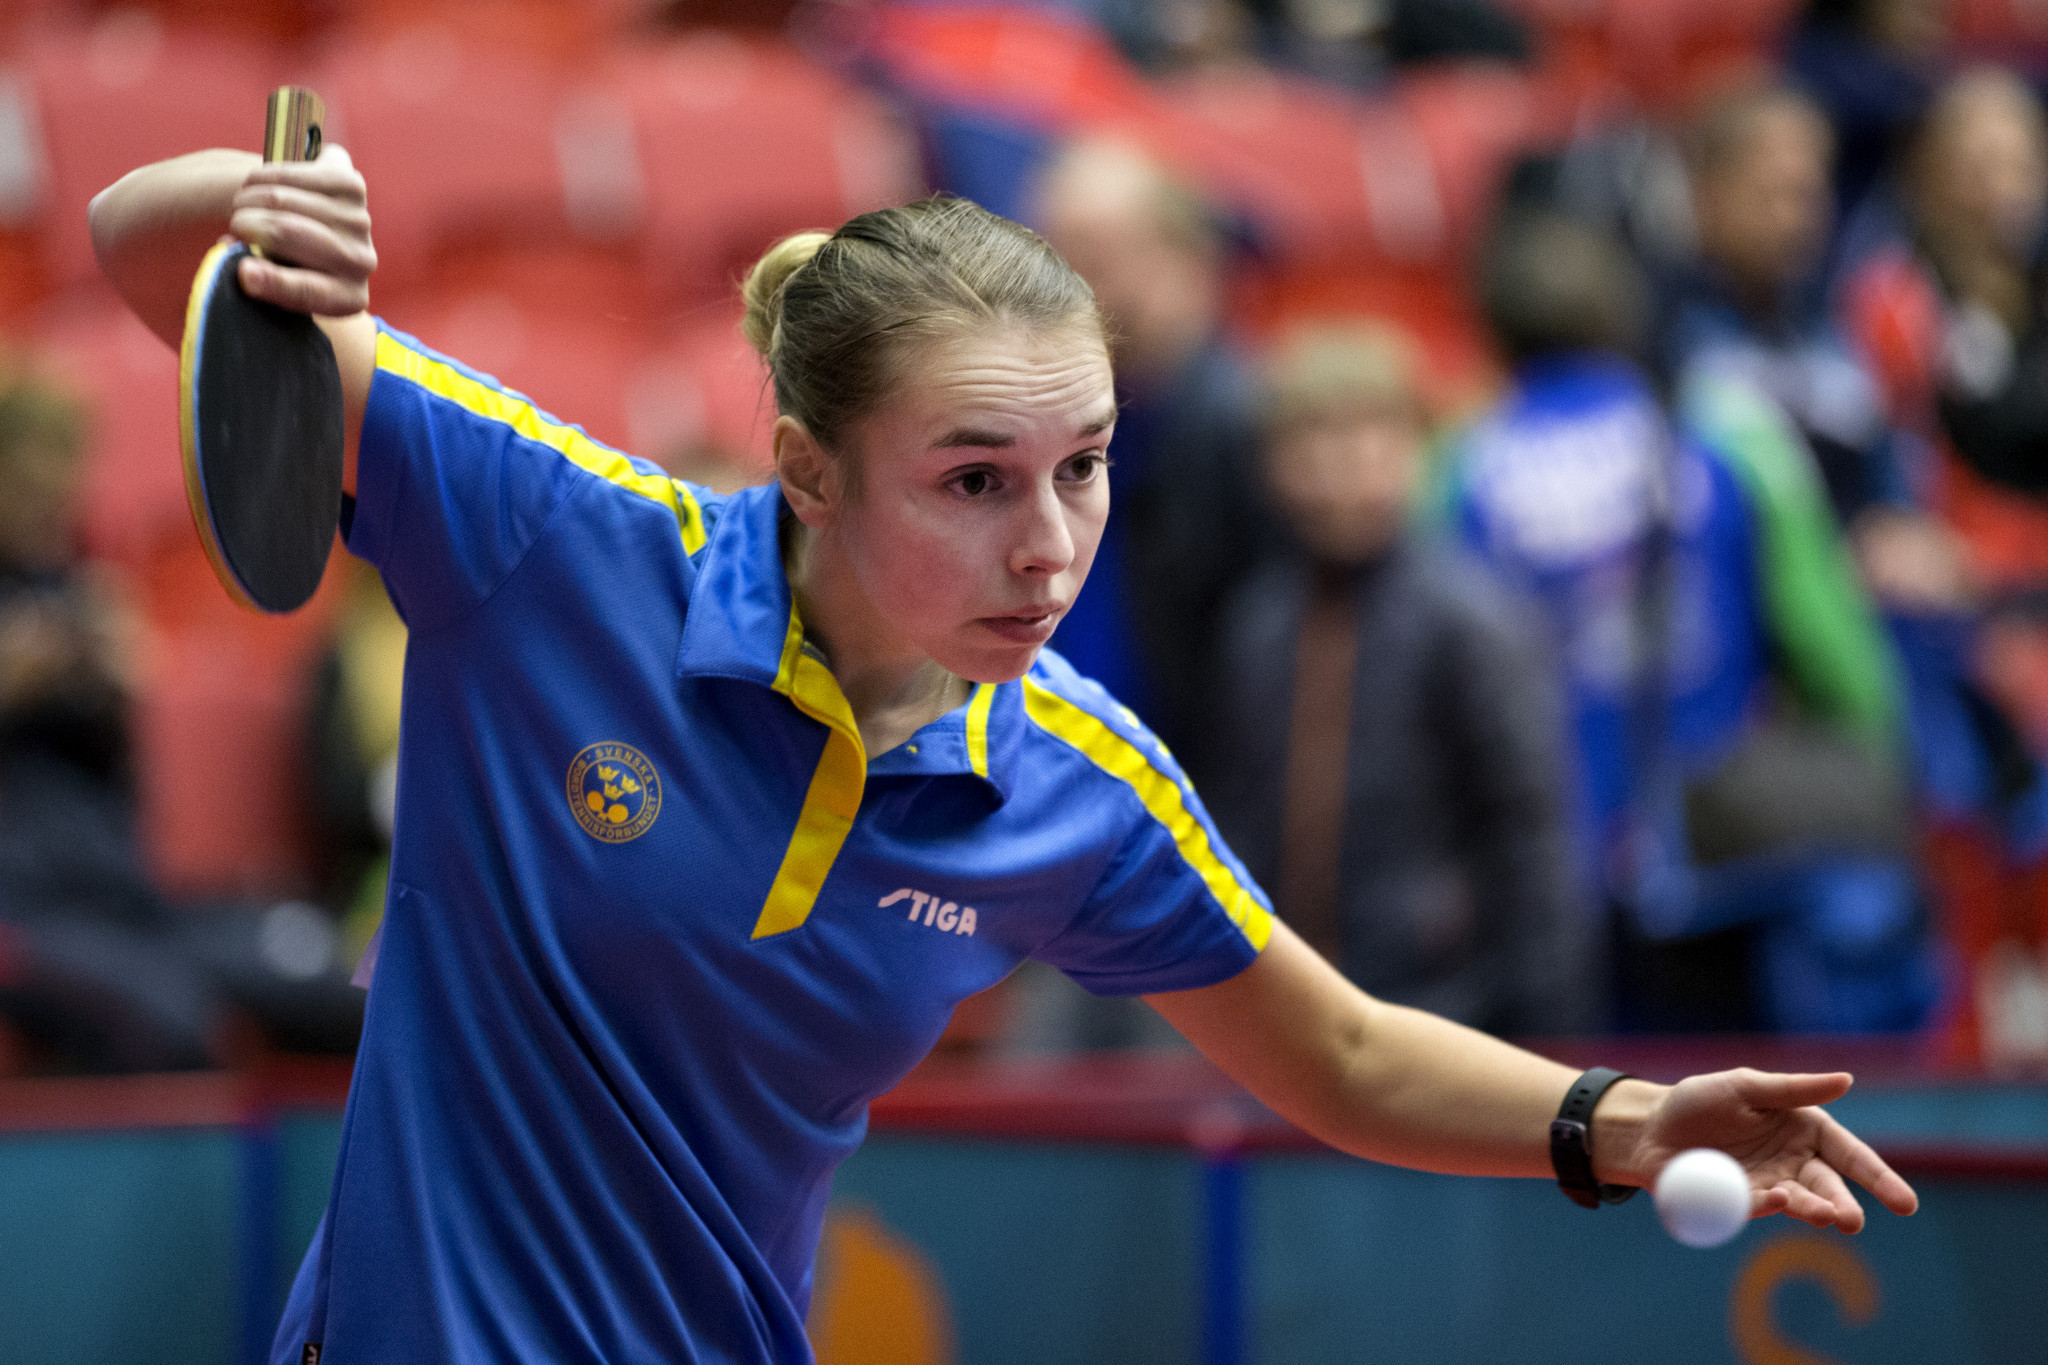 Linda Bergstrom is one of four female table tennis players to book their place at Tokyo 2020 today ©Getty Images